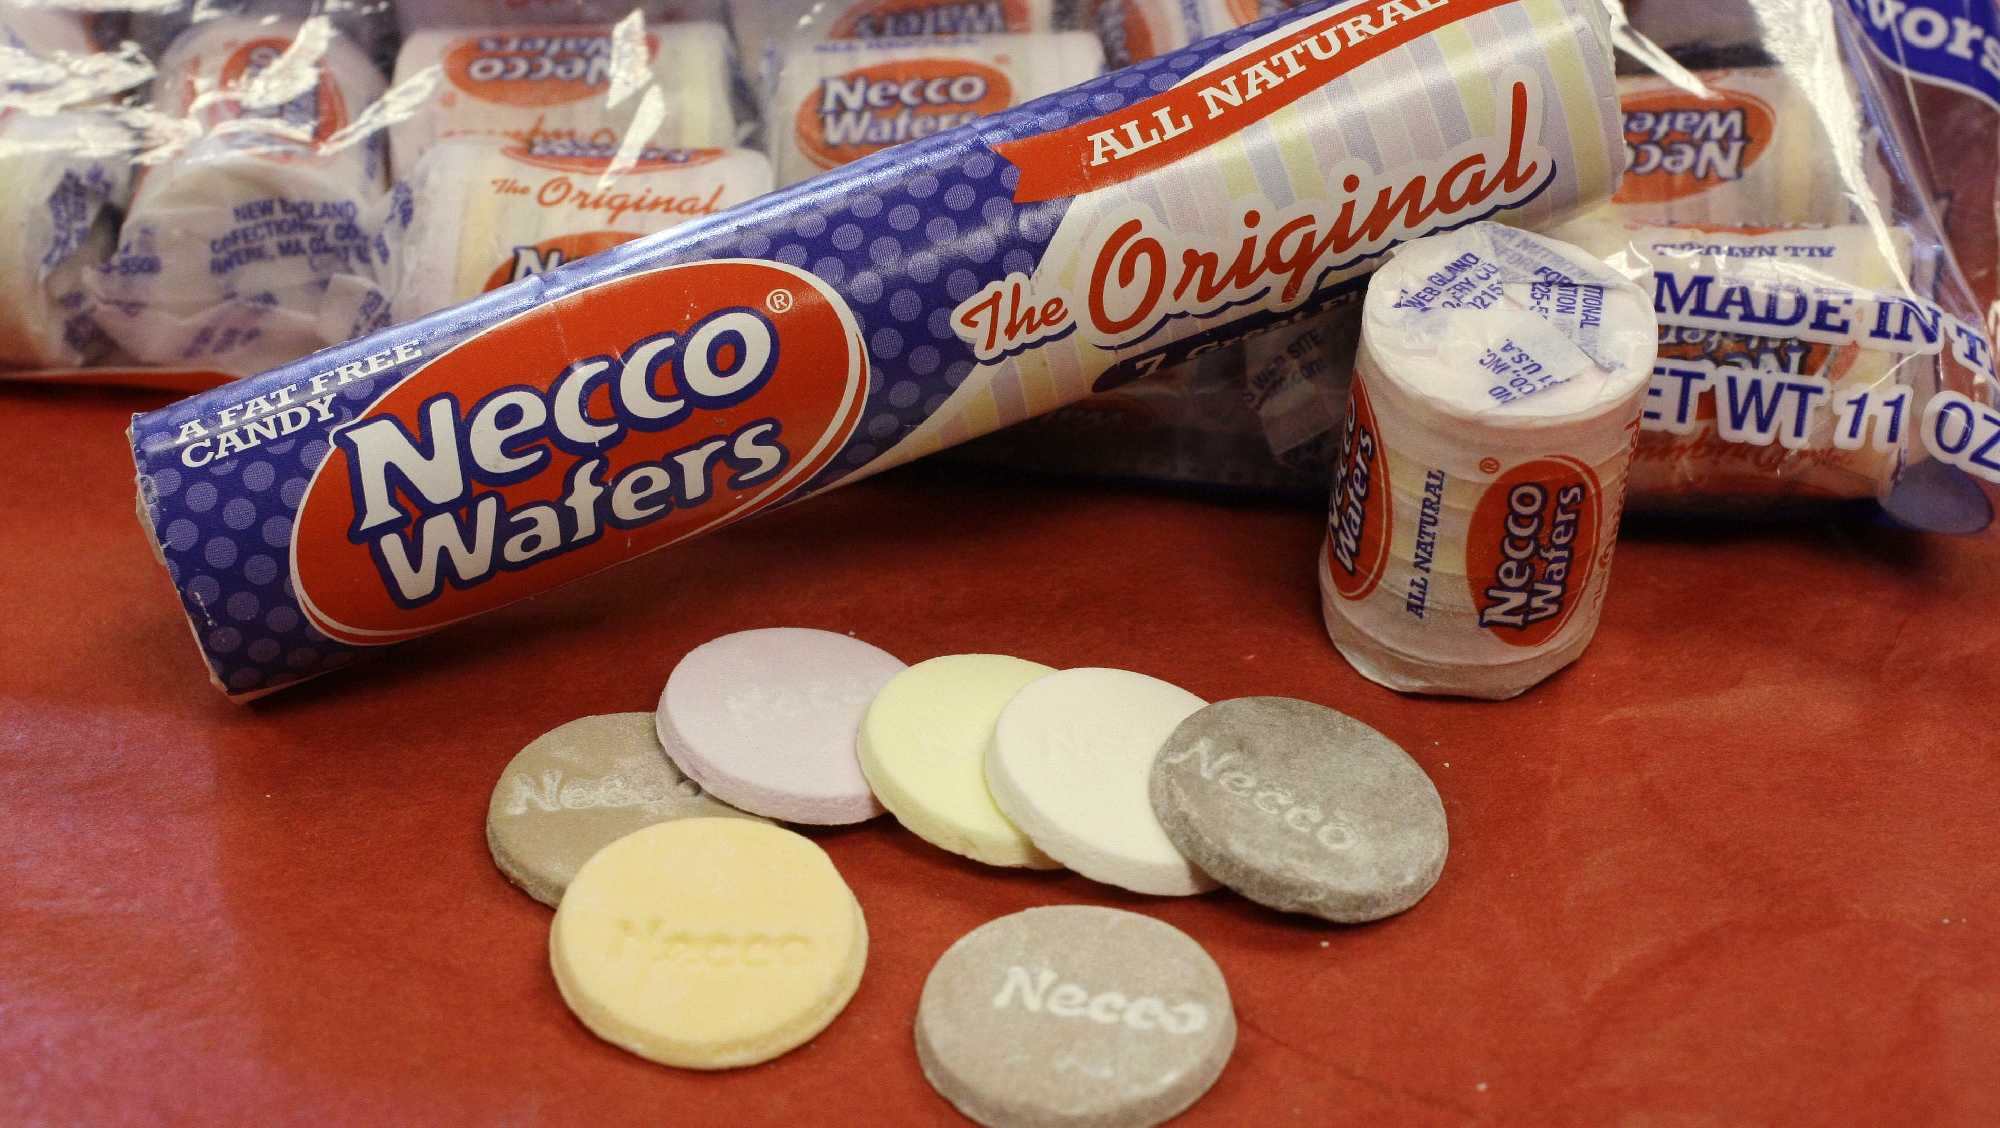 """The New England Confectionery Company (Necco)is considered the """"oldest continuously operating candy company in the United States."""" Its headquarters are located in Revere."""